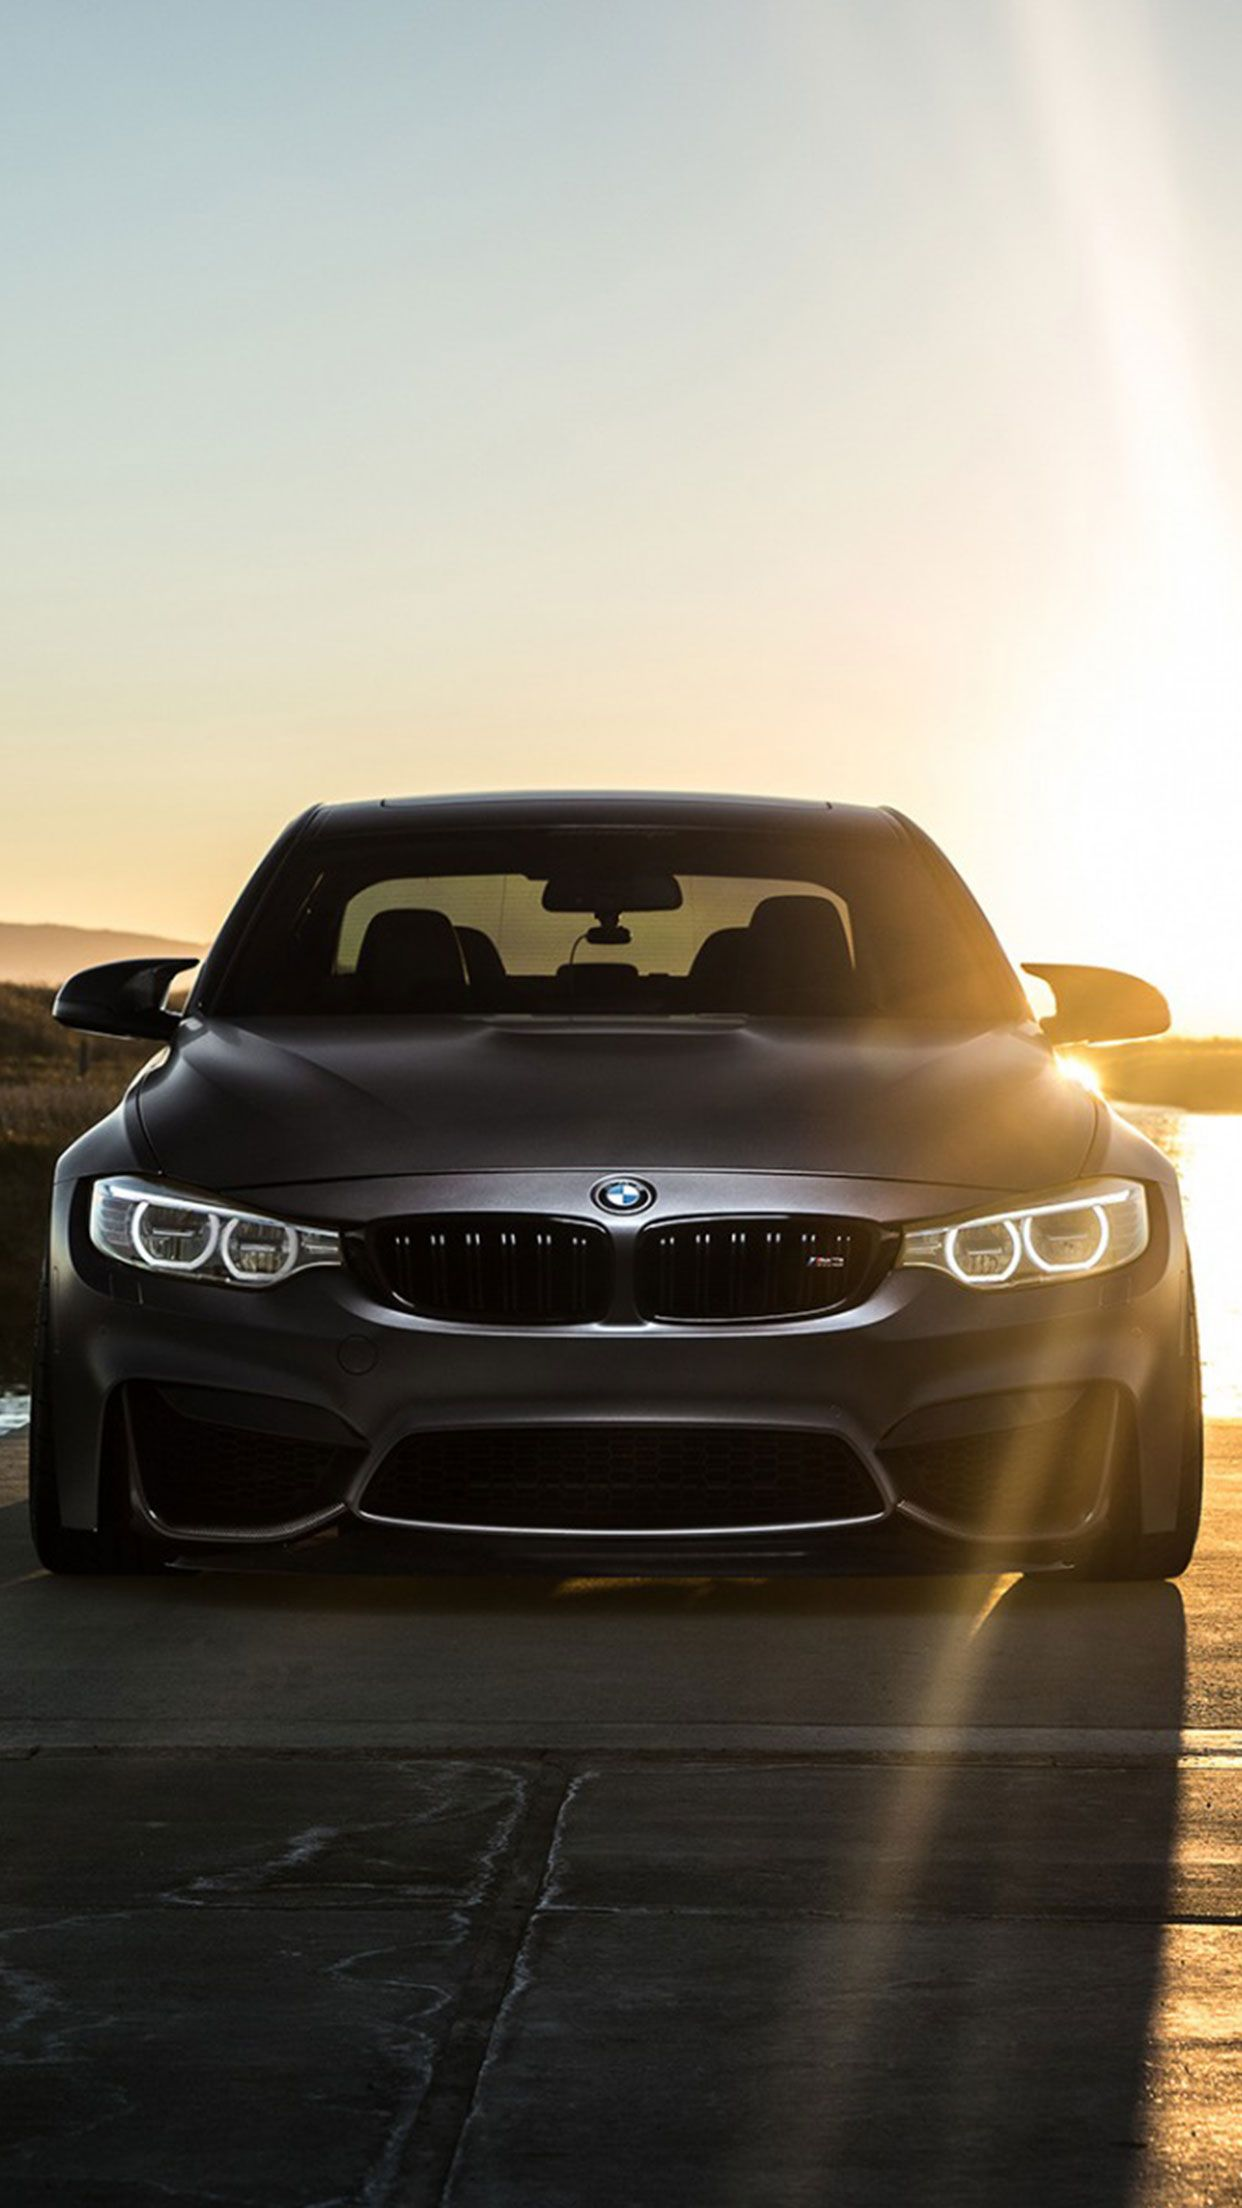 Grey Bmw Car Wallpaper For #iphone And #android #bmw #car